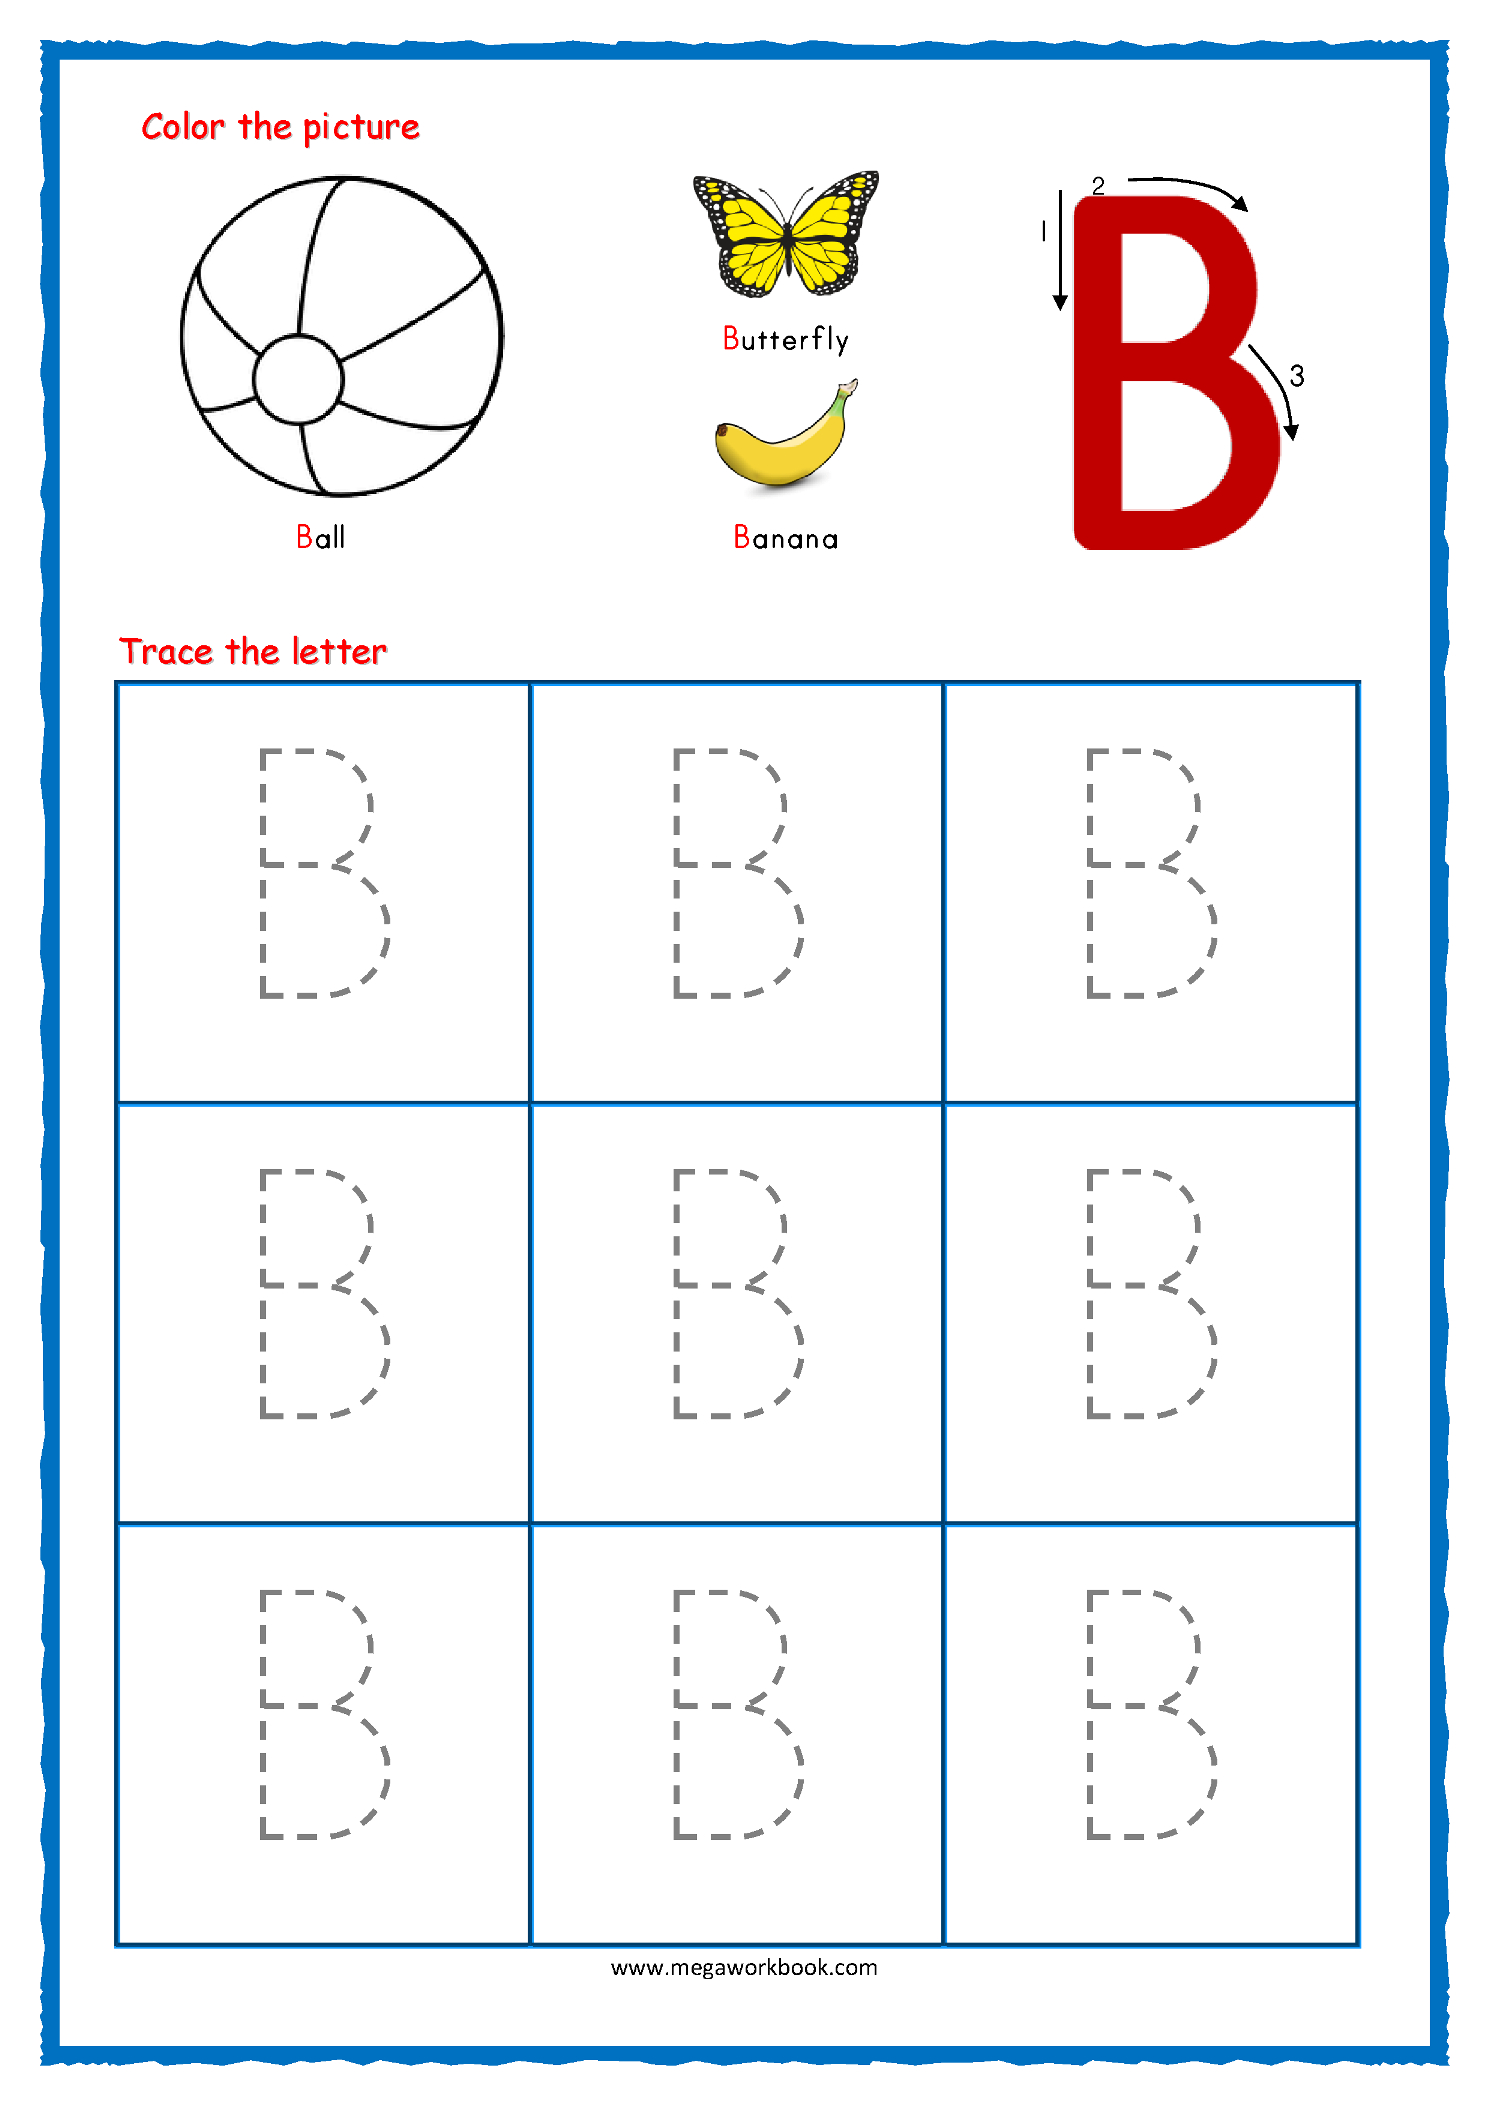 Tracing Letters - Alphabet Tracing - Capital Letters with I Letter Tracing